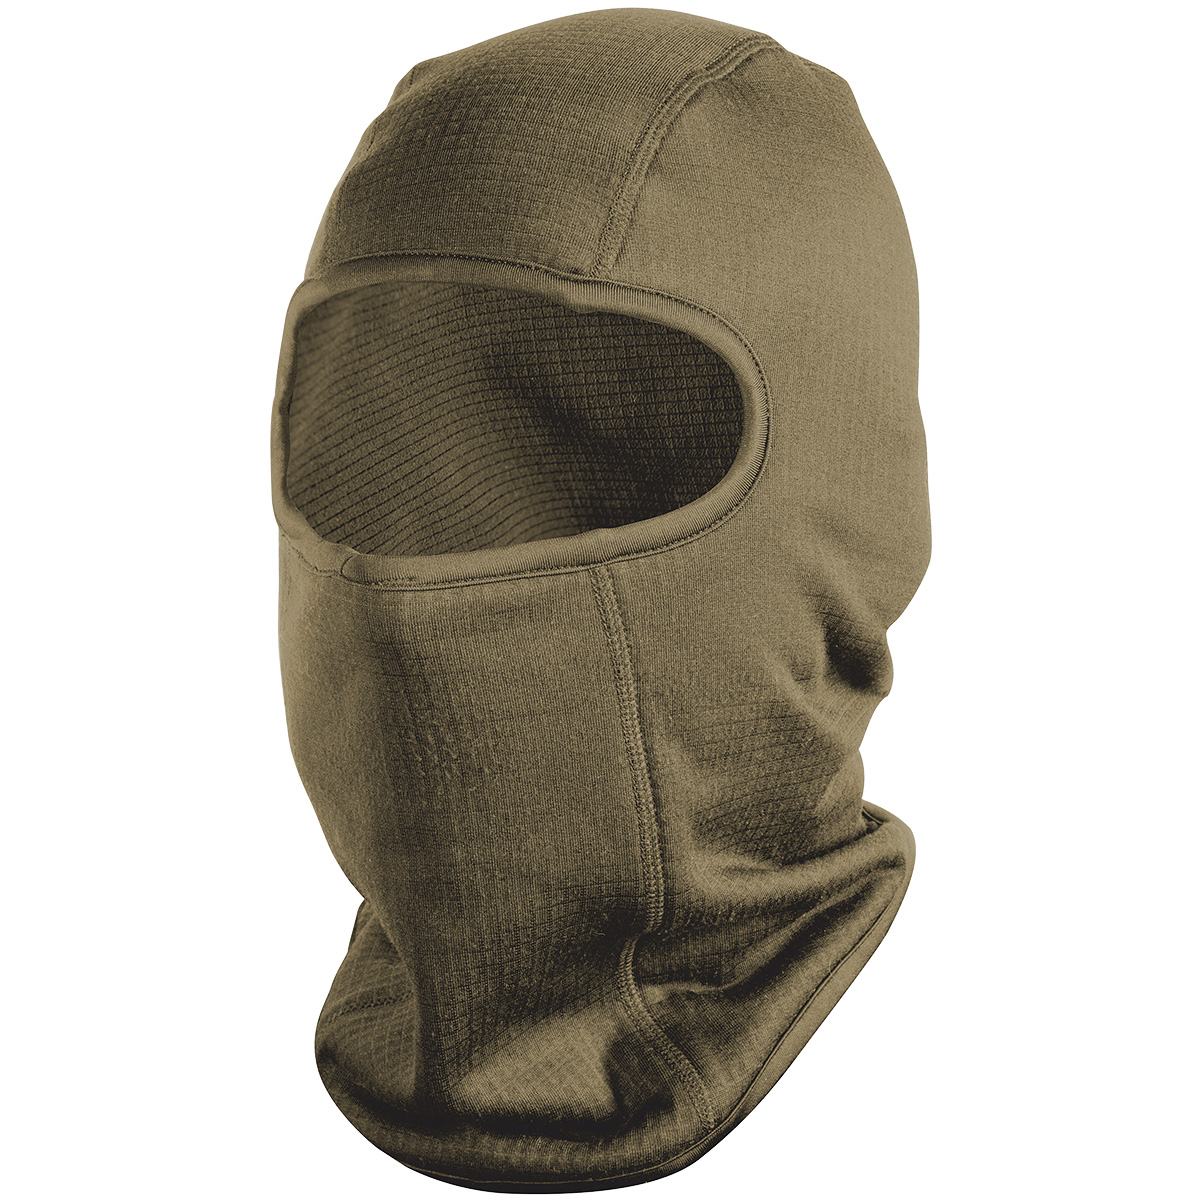 Sentinel HELIKON COLD WEATHER FACE MASK WARM 1 HOLE TACTICAL ARMY WINTER  BALACLAVA COYOTE fc50fc1f8a6